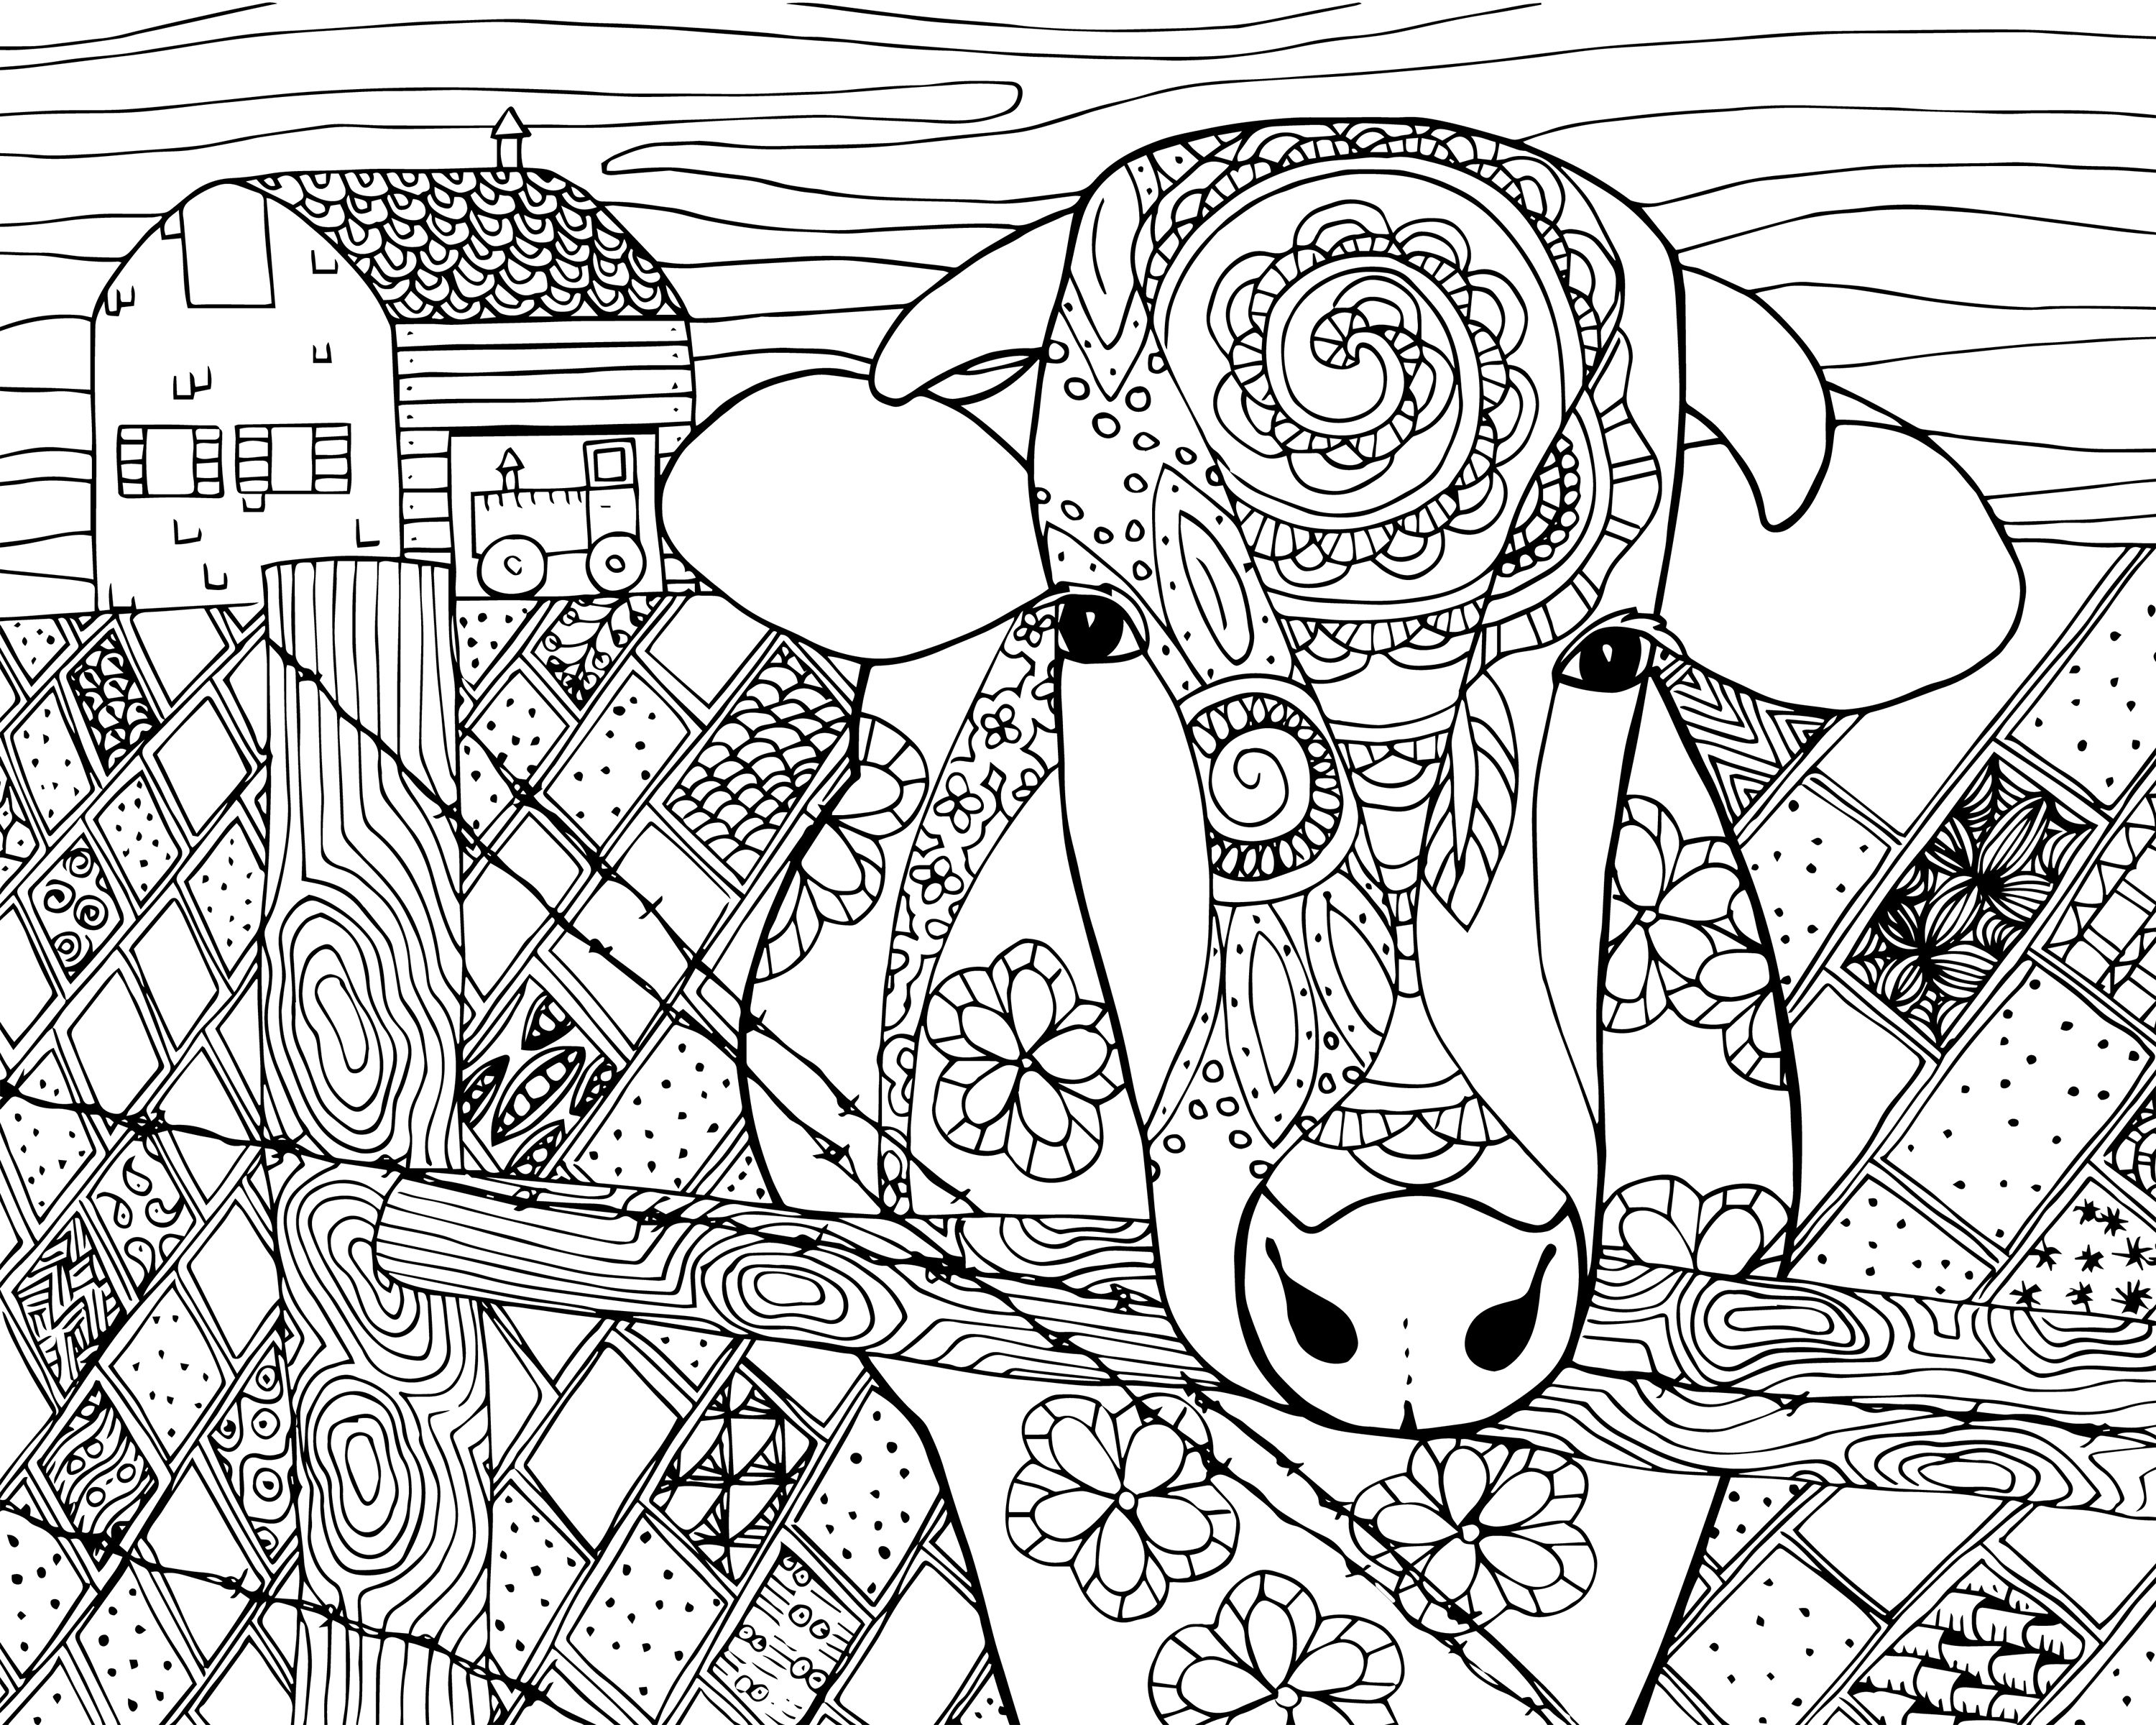 Free printable coloring pages for grown ups - Free Coloring Pages Adults Art And Abstract Category Image 62